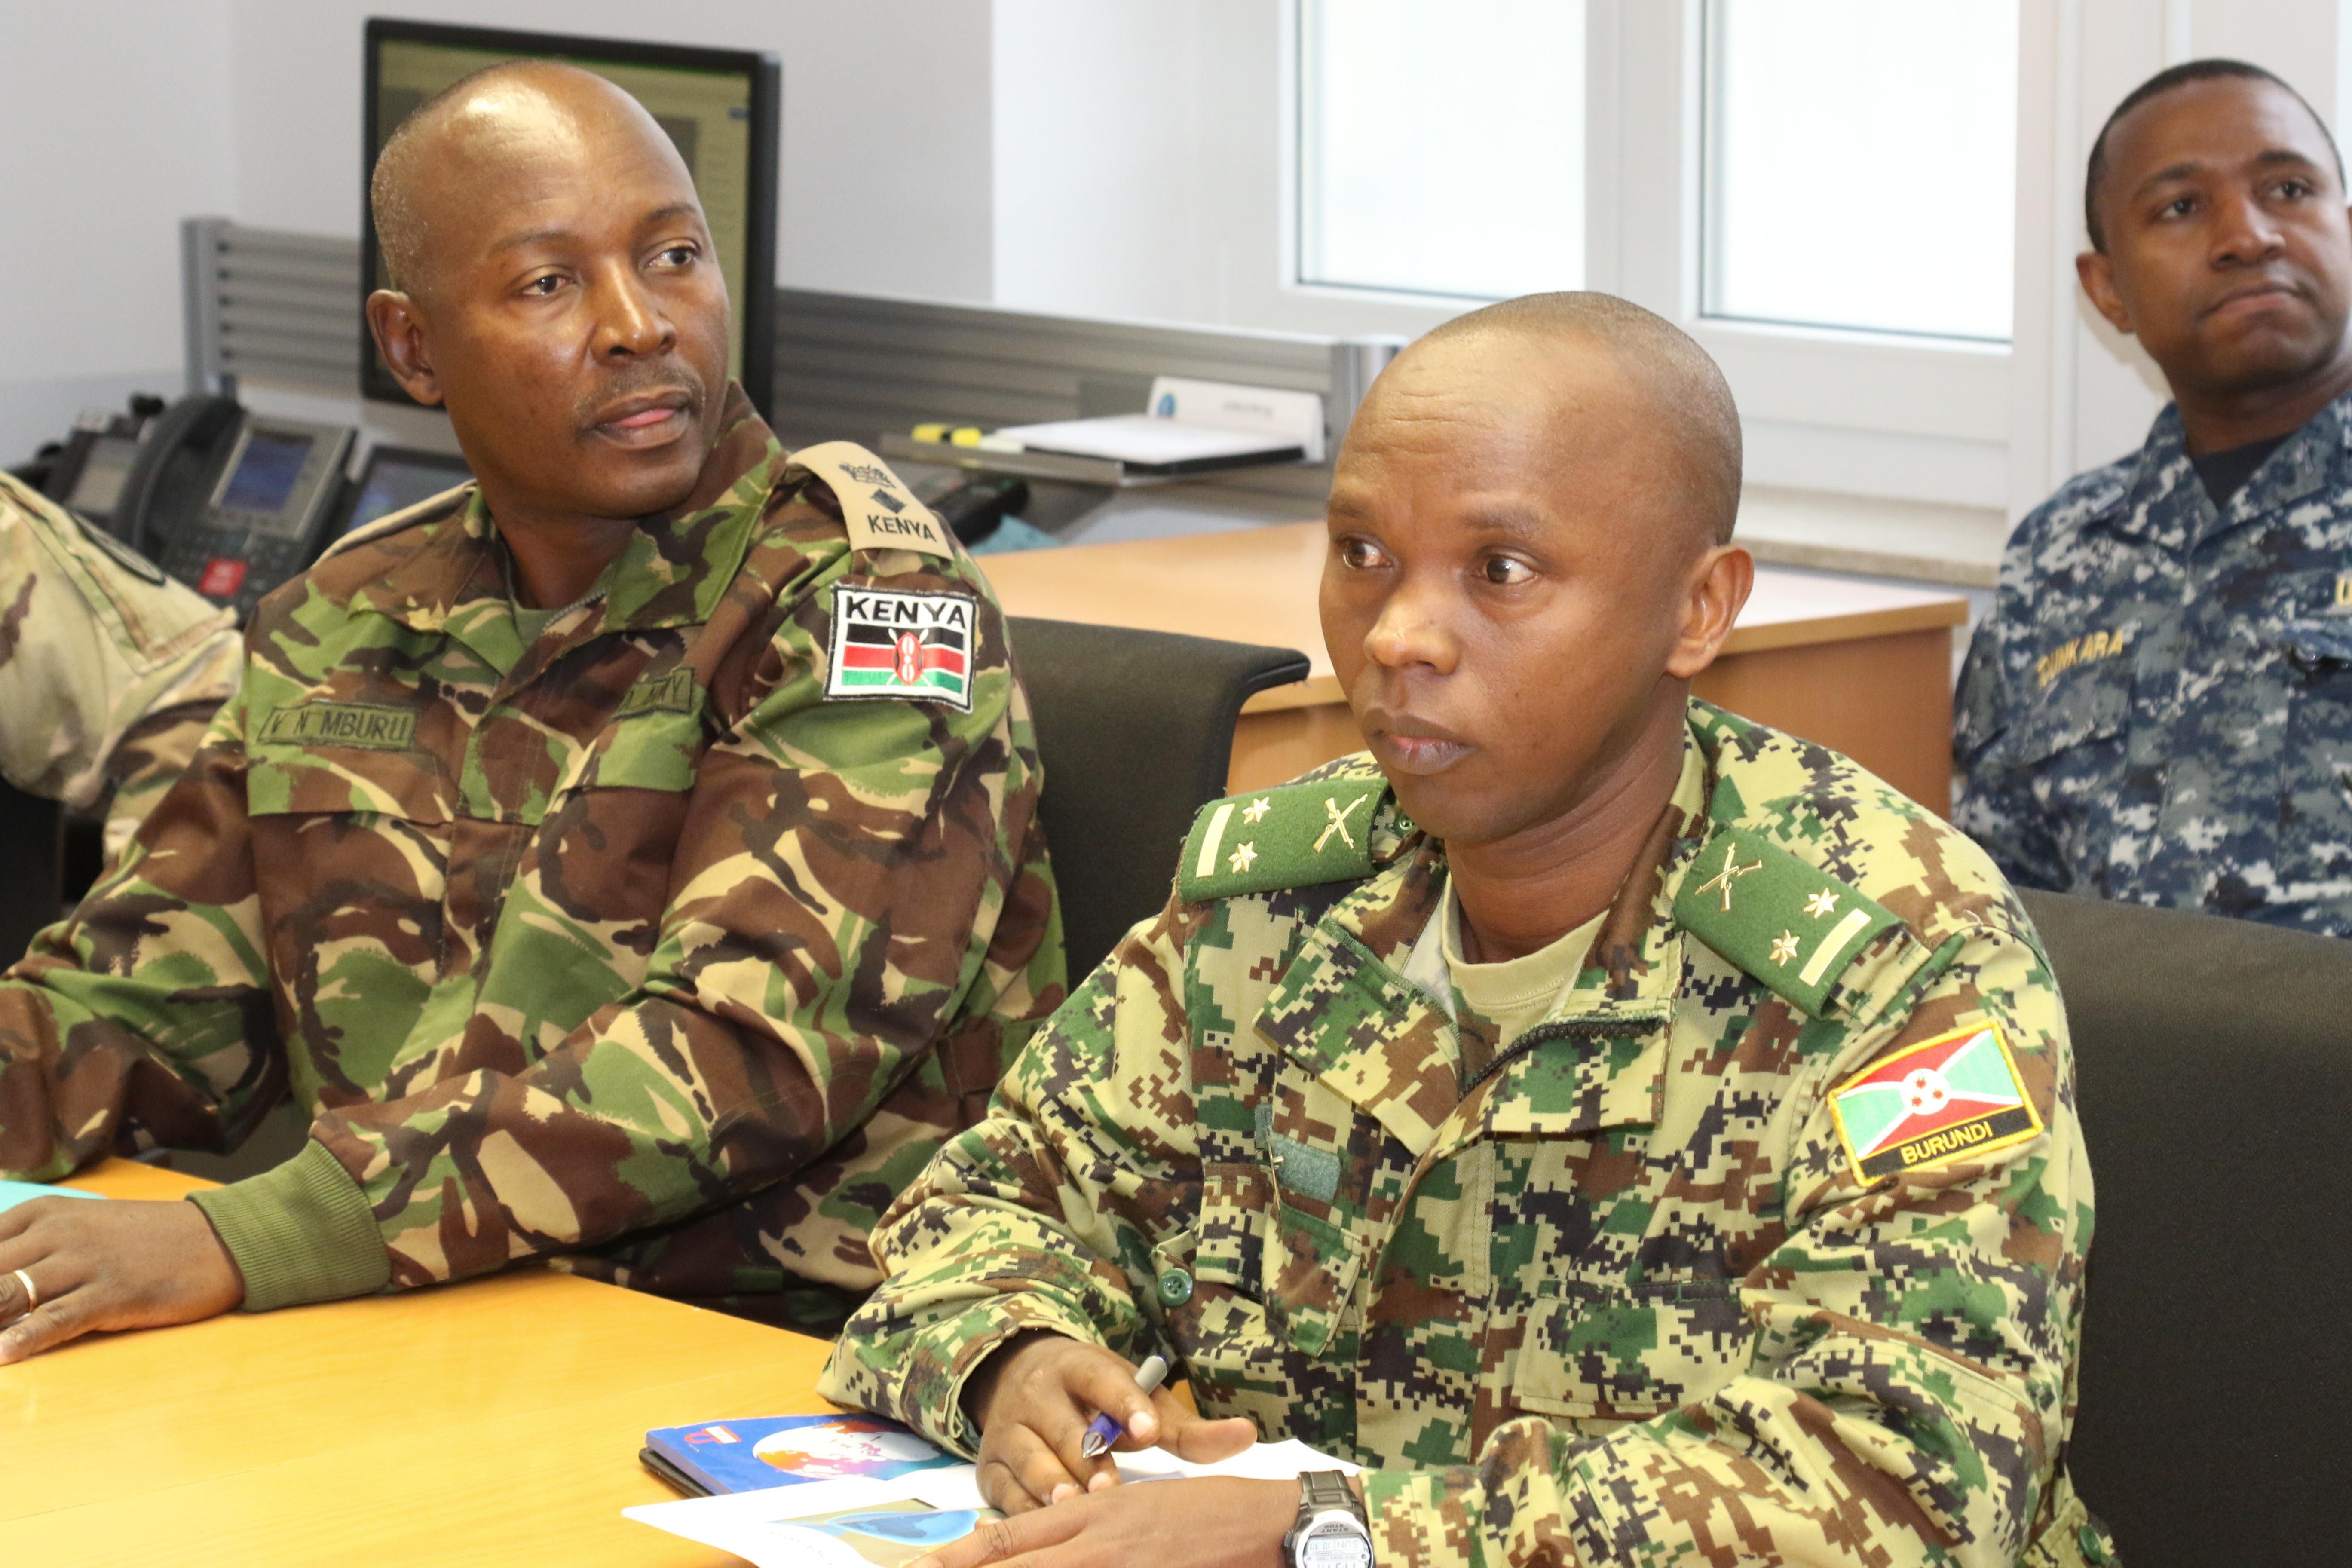 Foreign liaison officers from Kenya and Burundi listen to briefings during a visit to the U.S. Africa Command headquarters in Stuttgart, Germany Oct. 30, 2018. Liaison officers from Combined Joint Task Force - Horn of Africa visited AFRICOM to meet with staff and receive briefings.